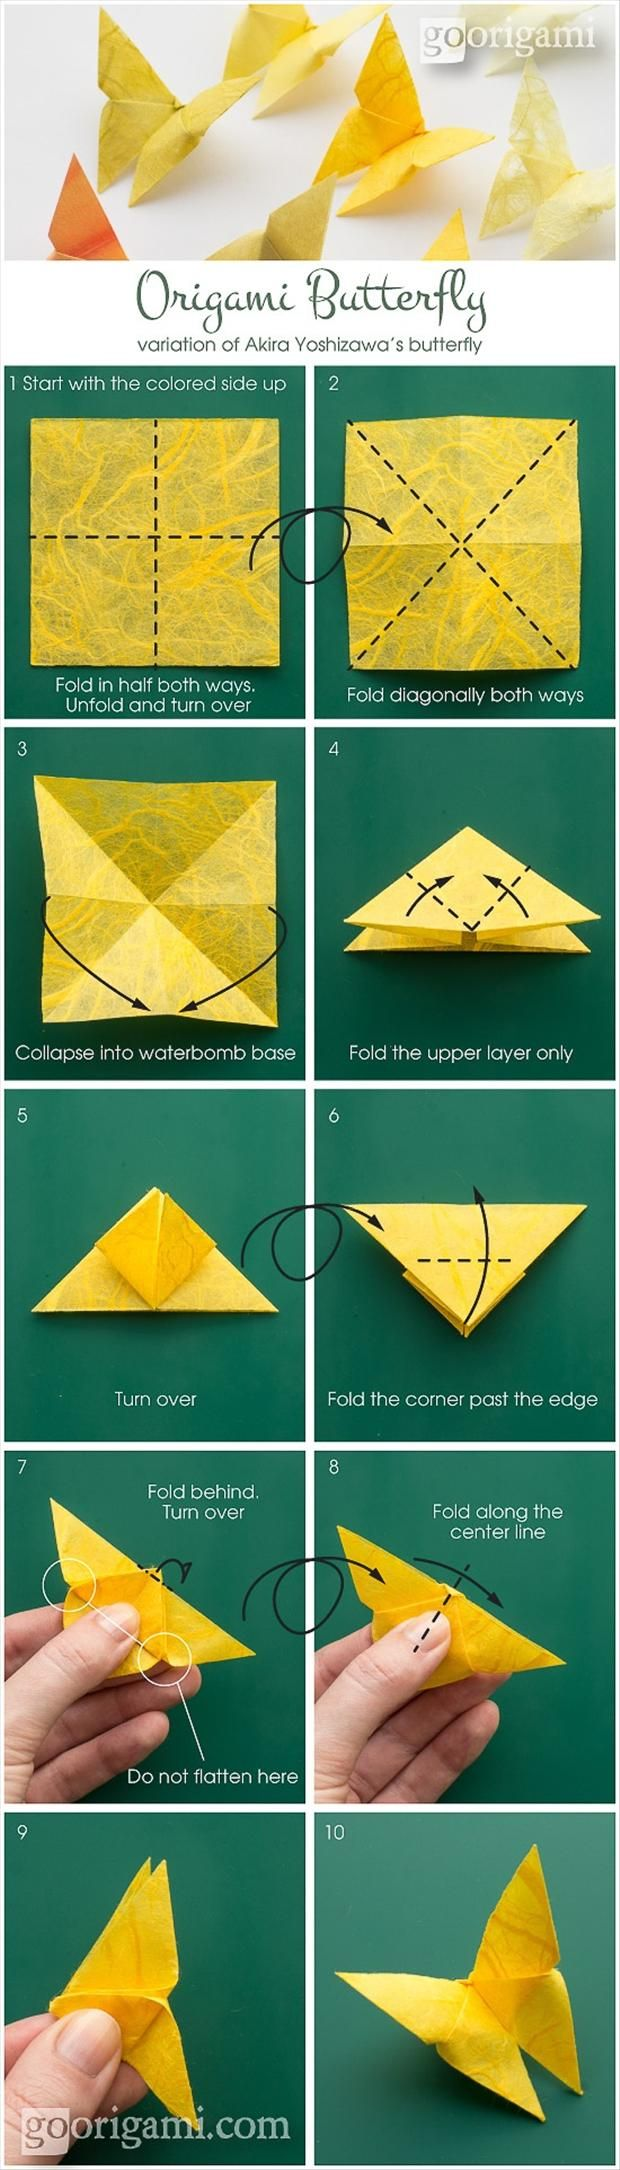 DIY Origami Butterfly diy craft crafts diy